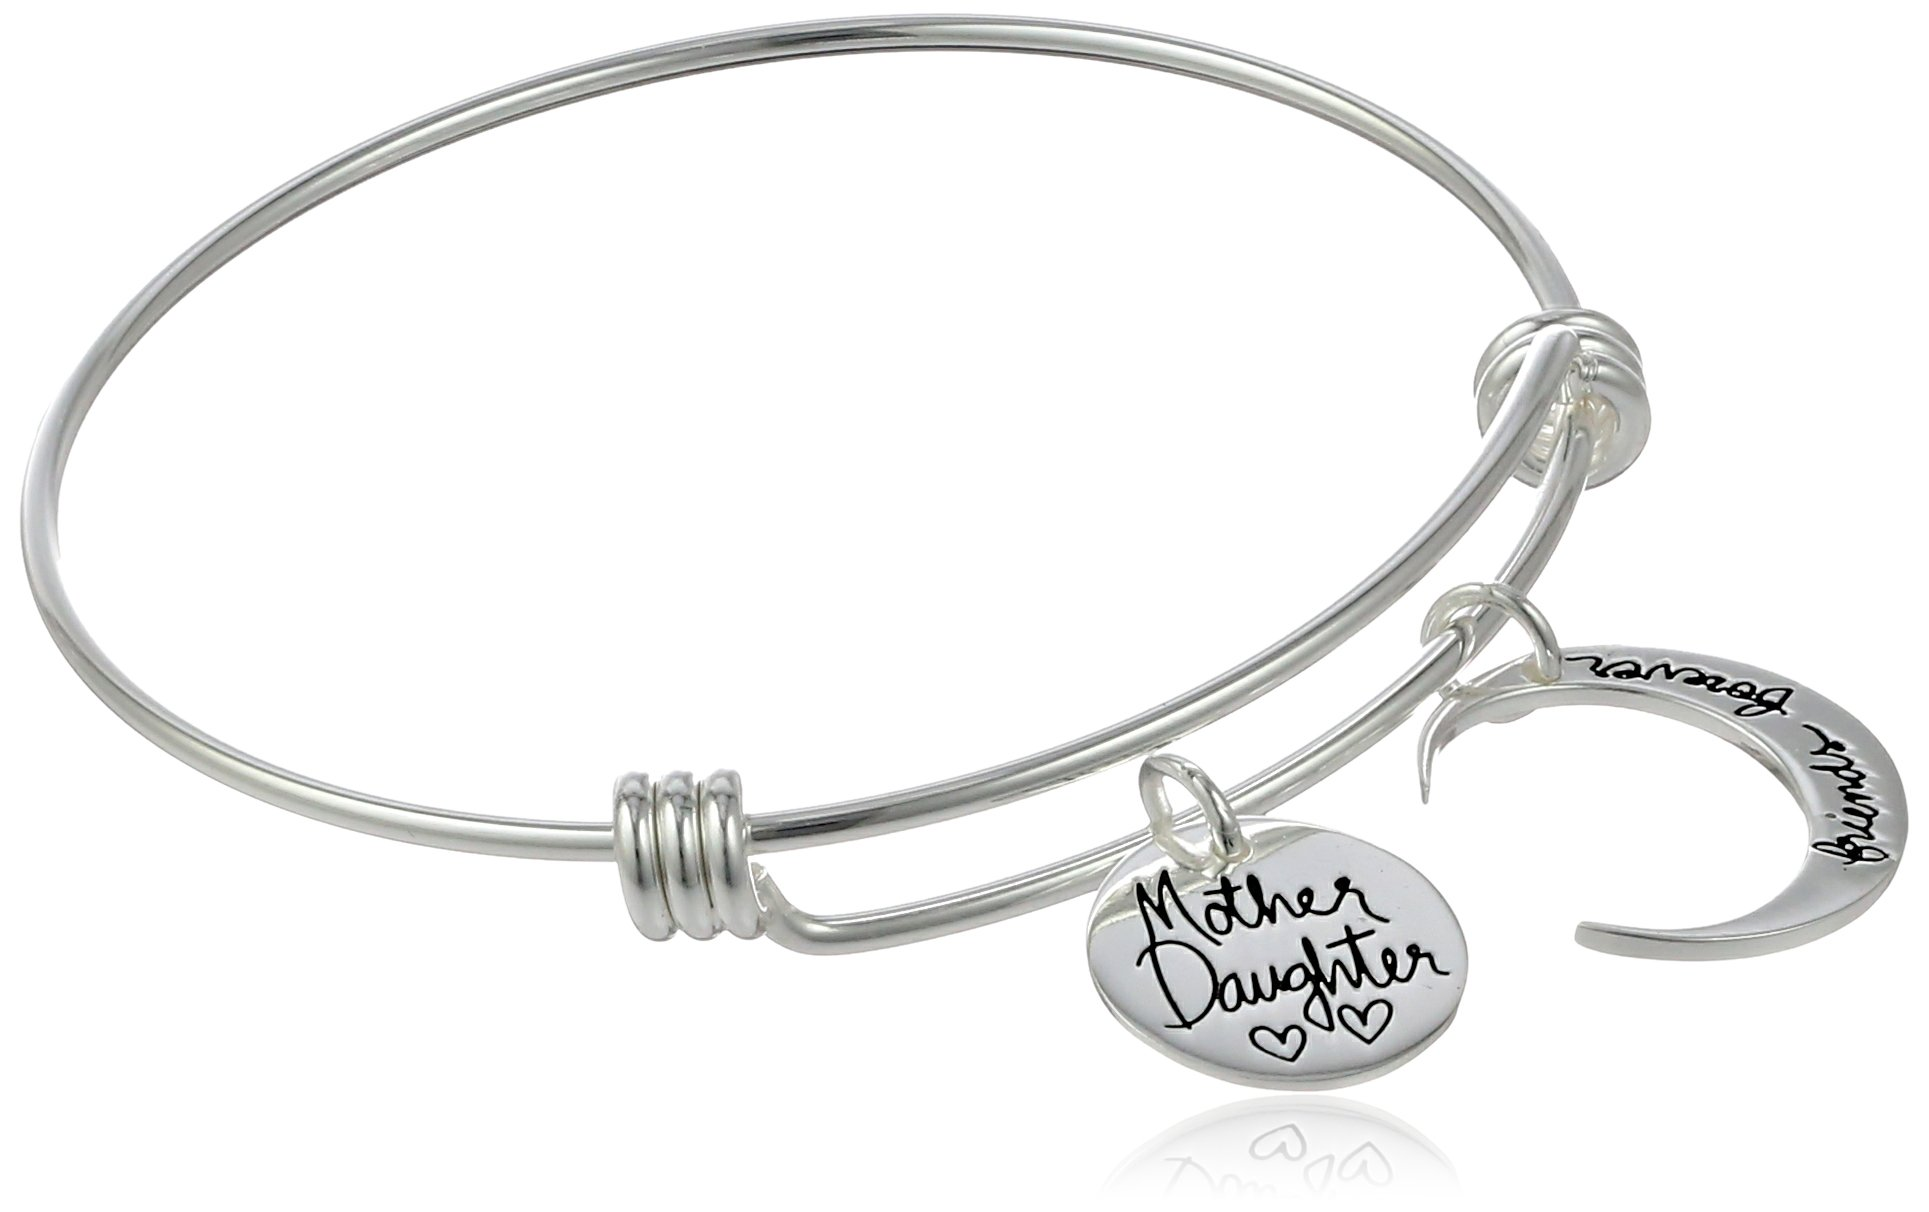 Mommy daughter bracelets